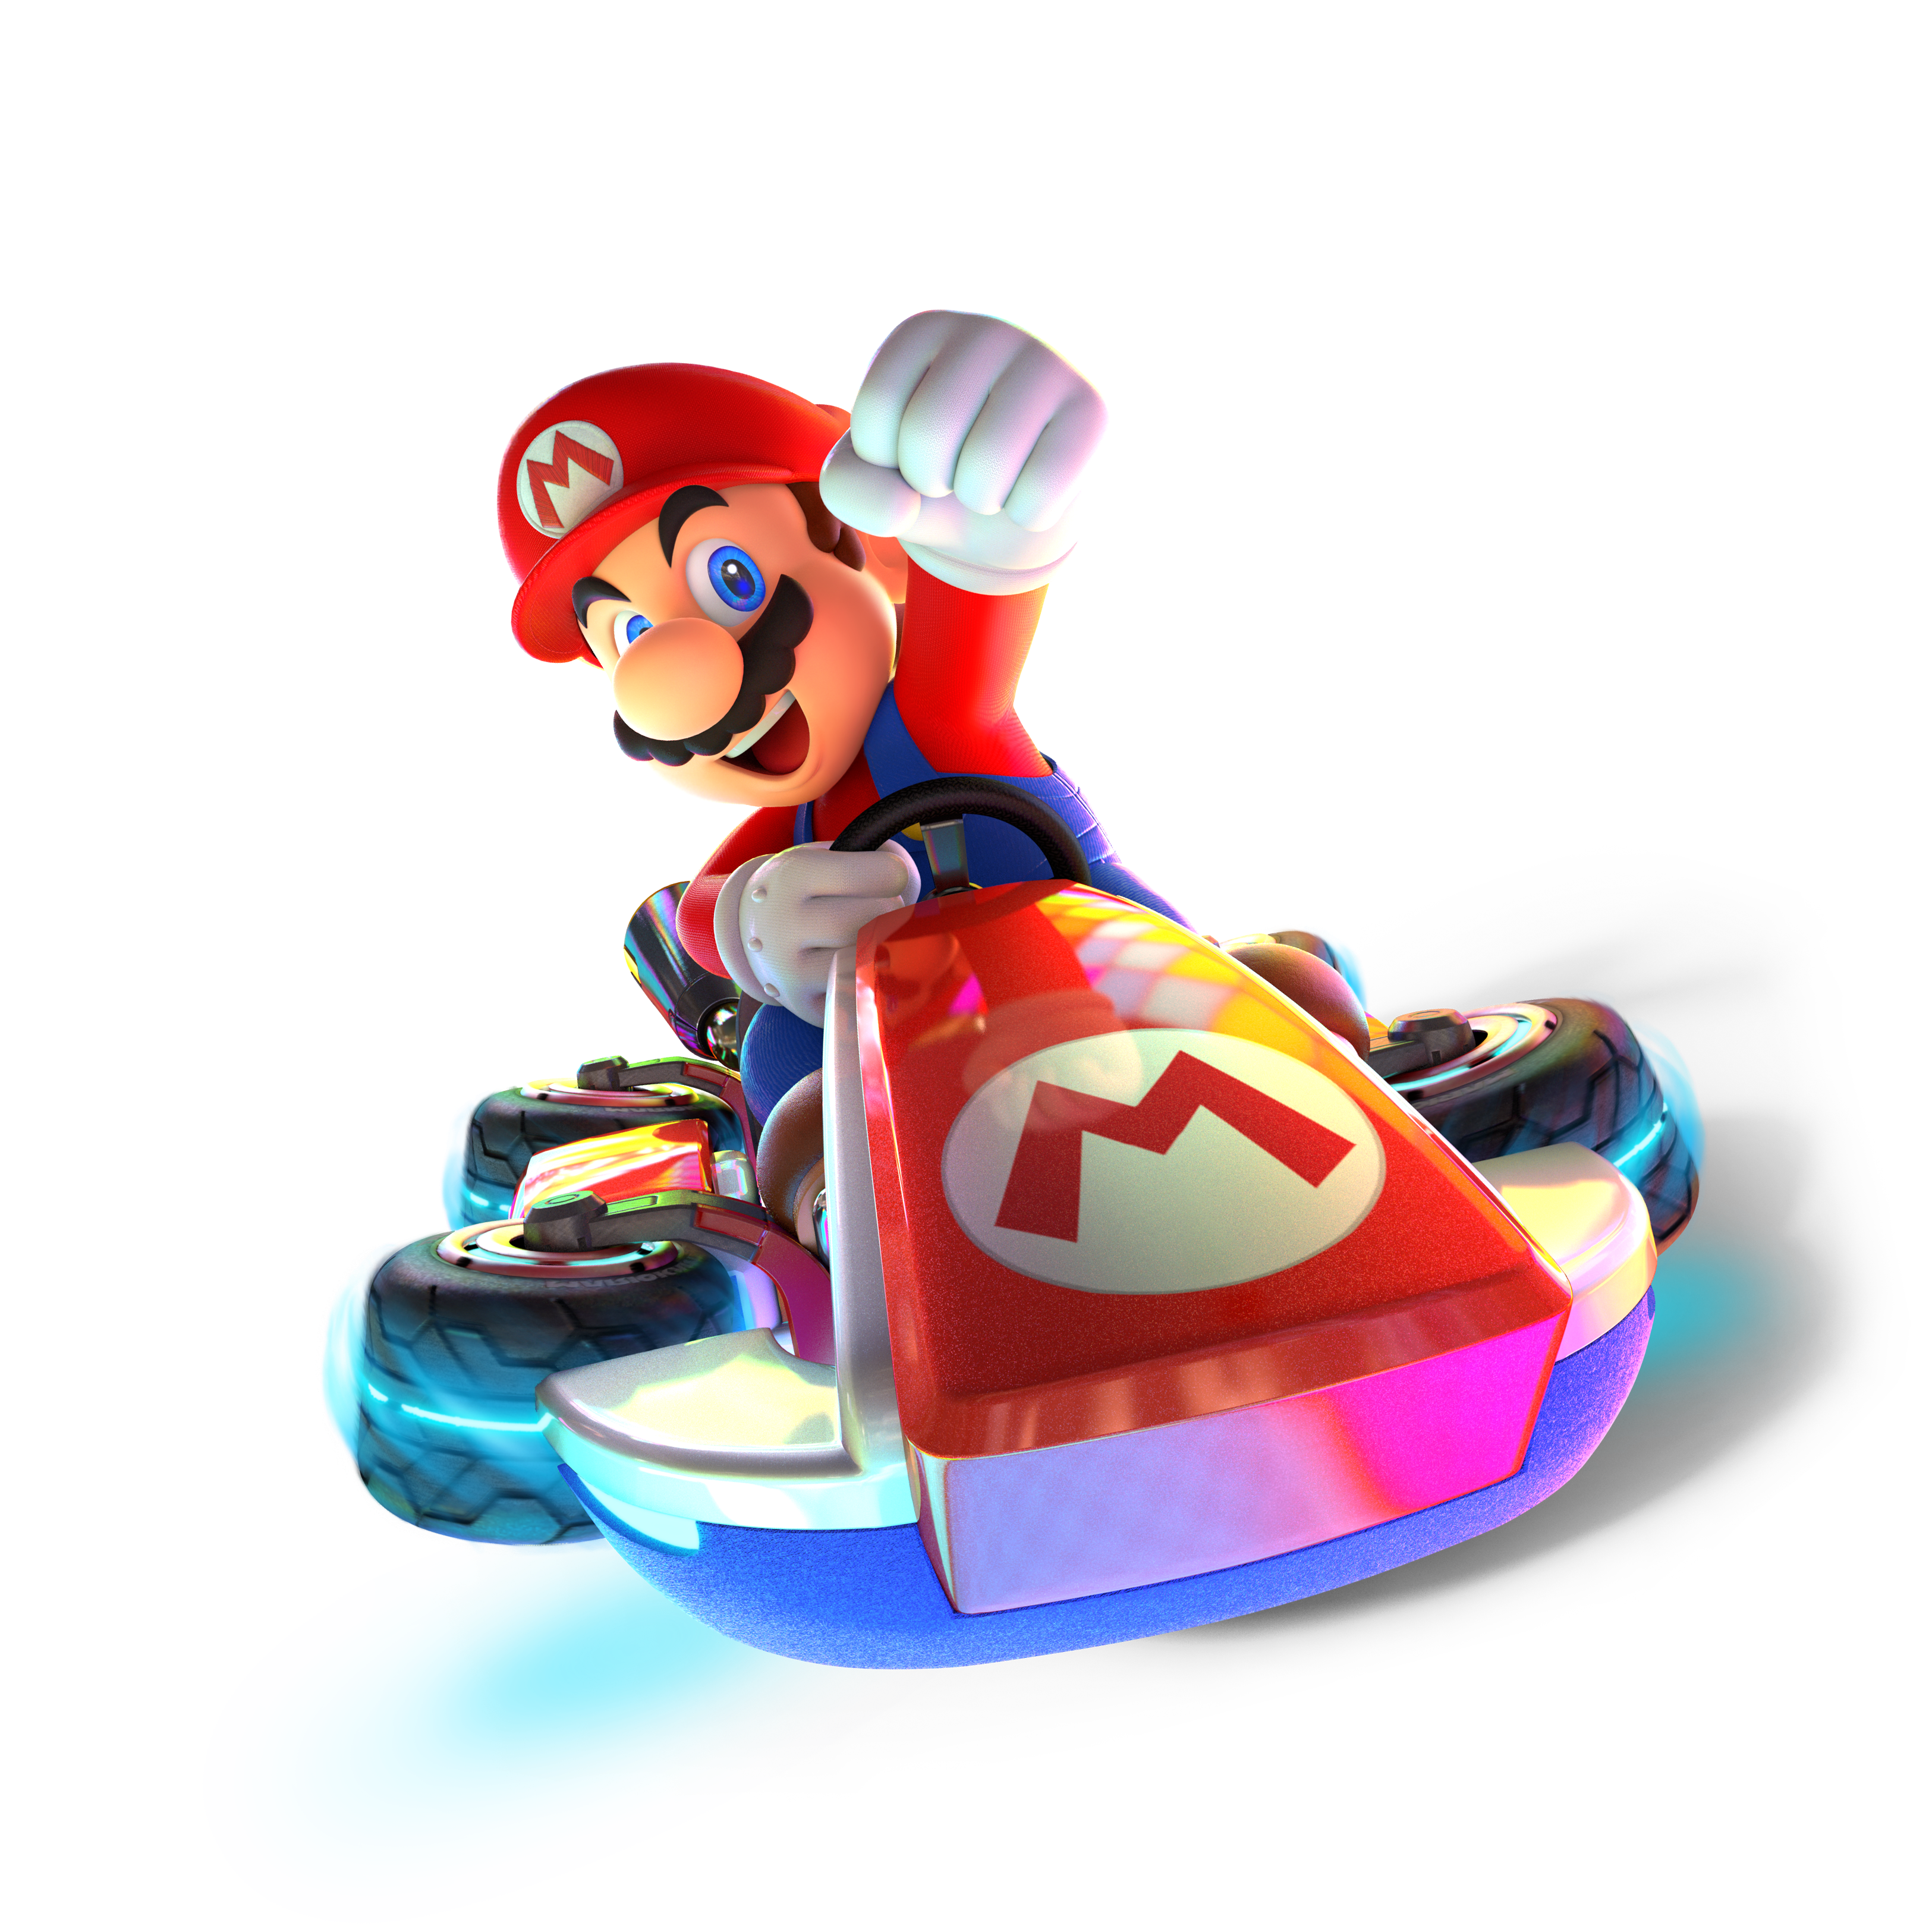 mario kart 8 deluxe revealed battle mode and new characters mario party legacy